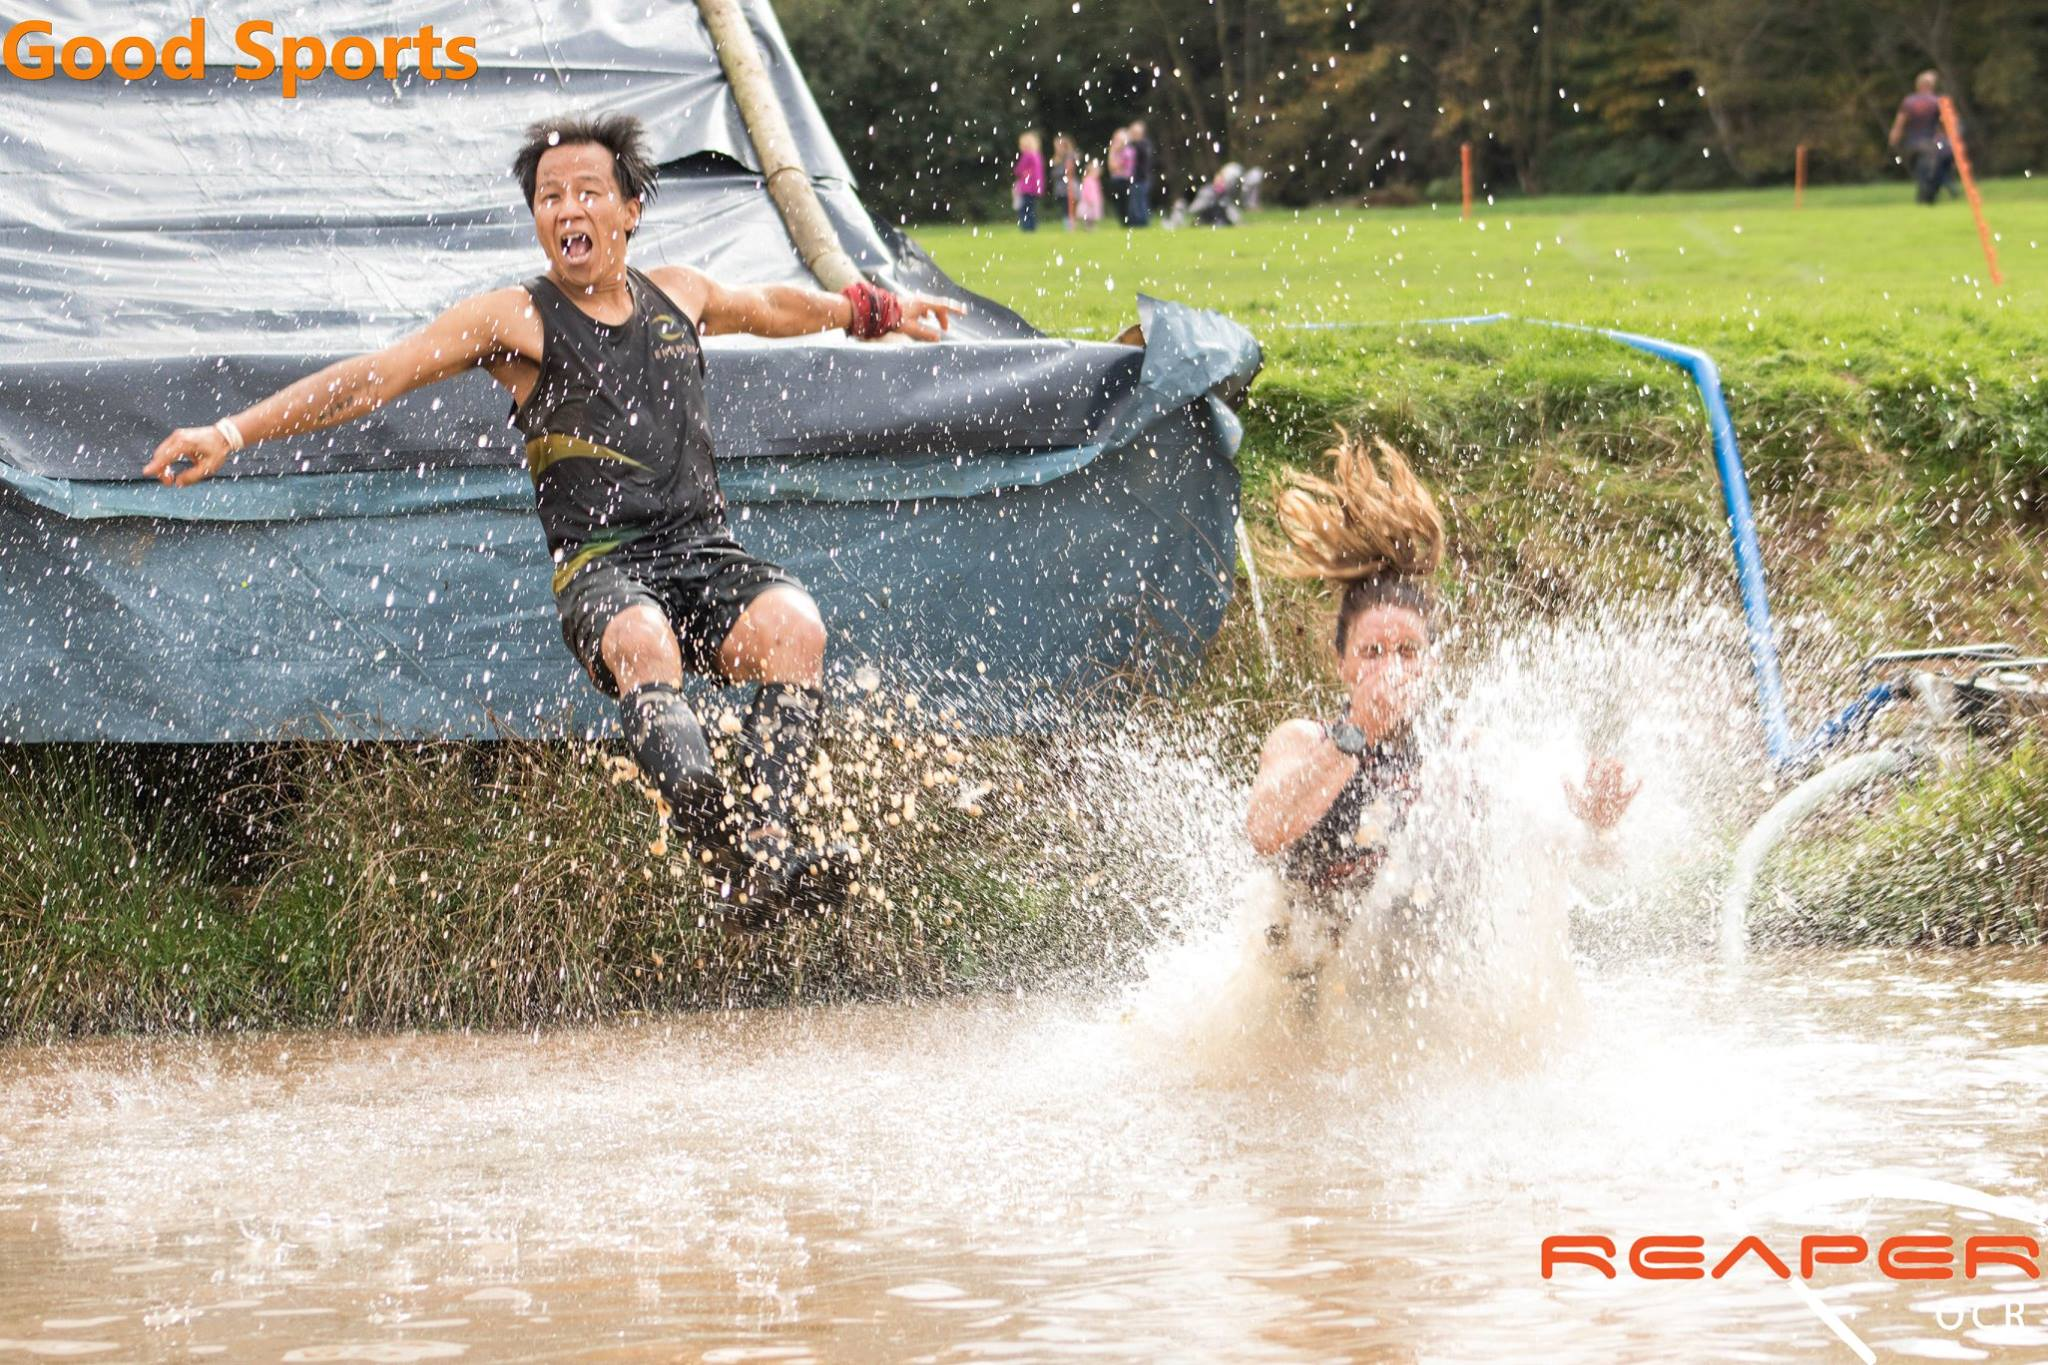 Reaper OCR Water Slide